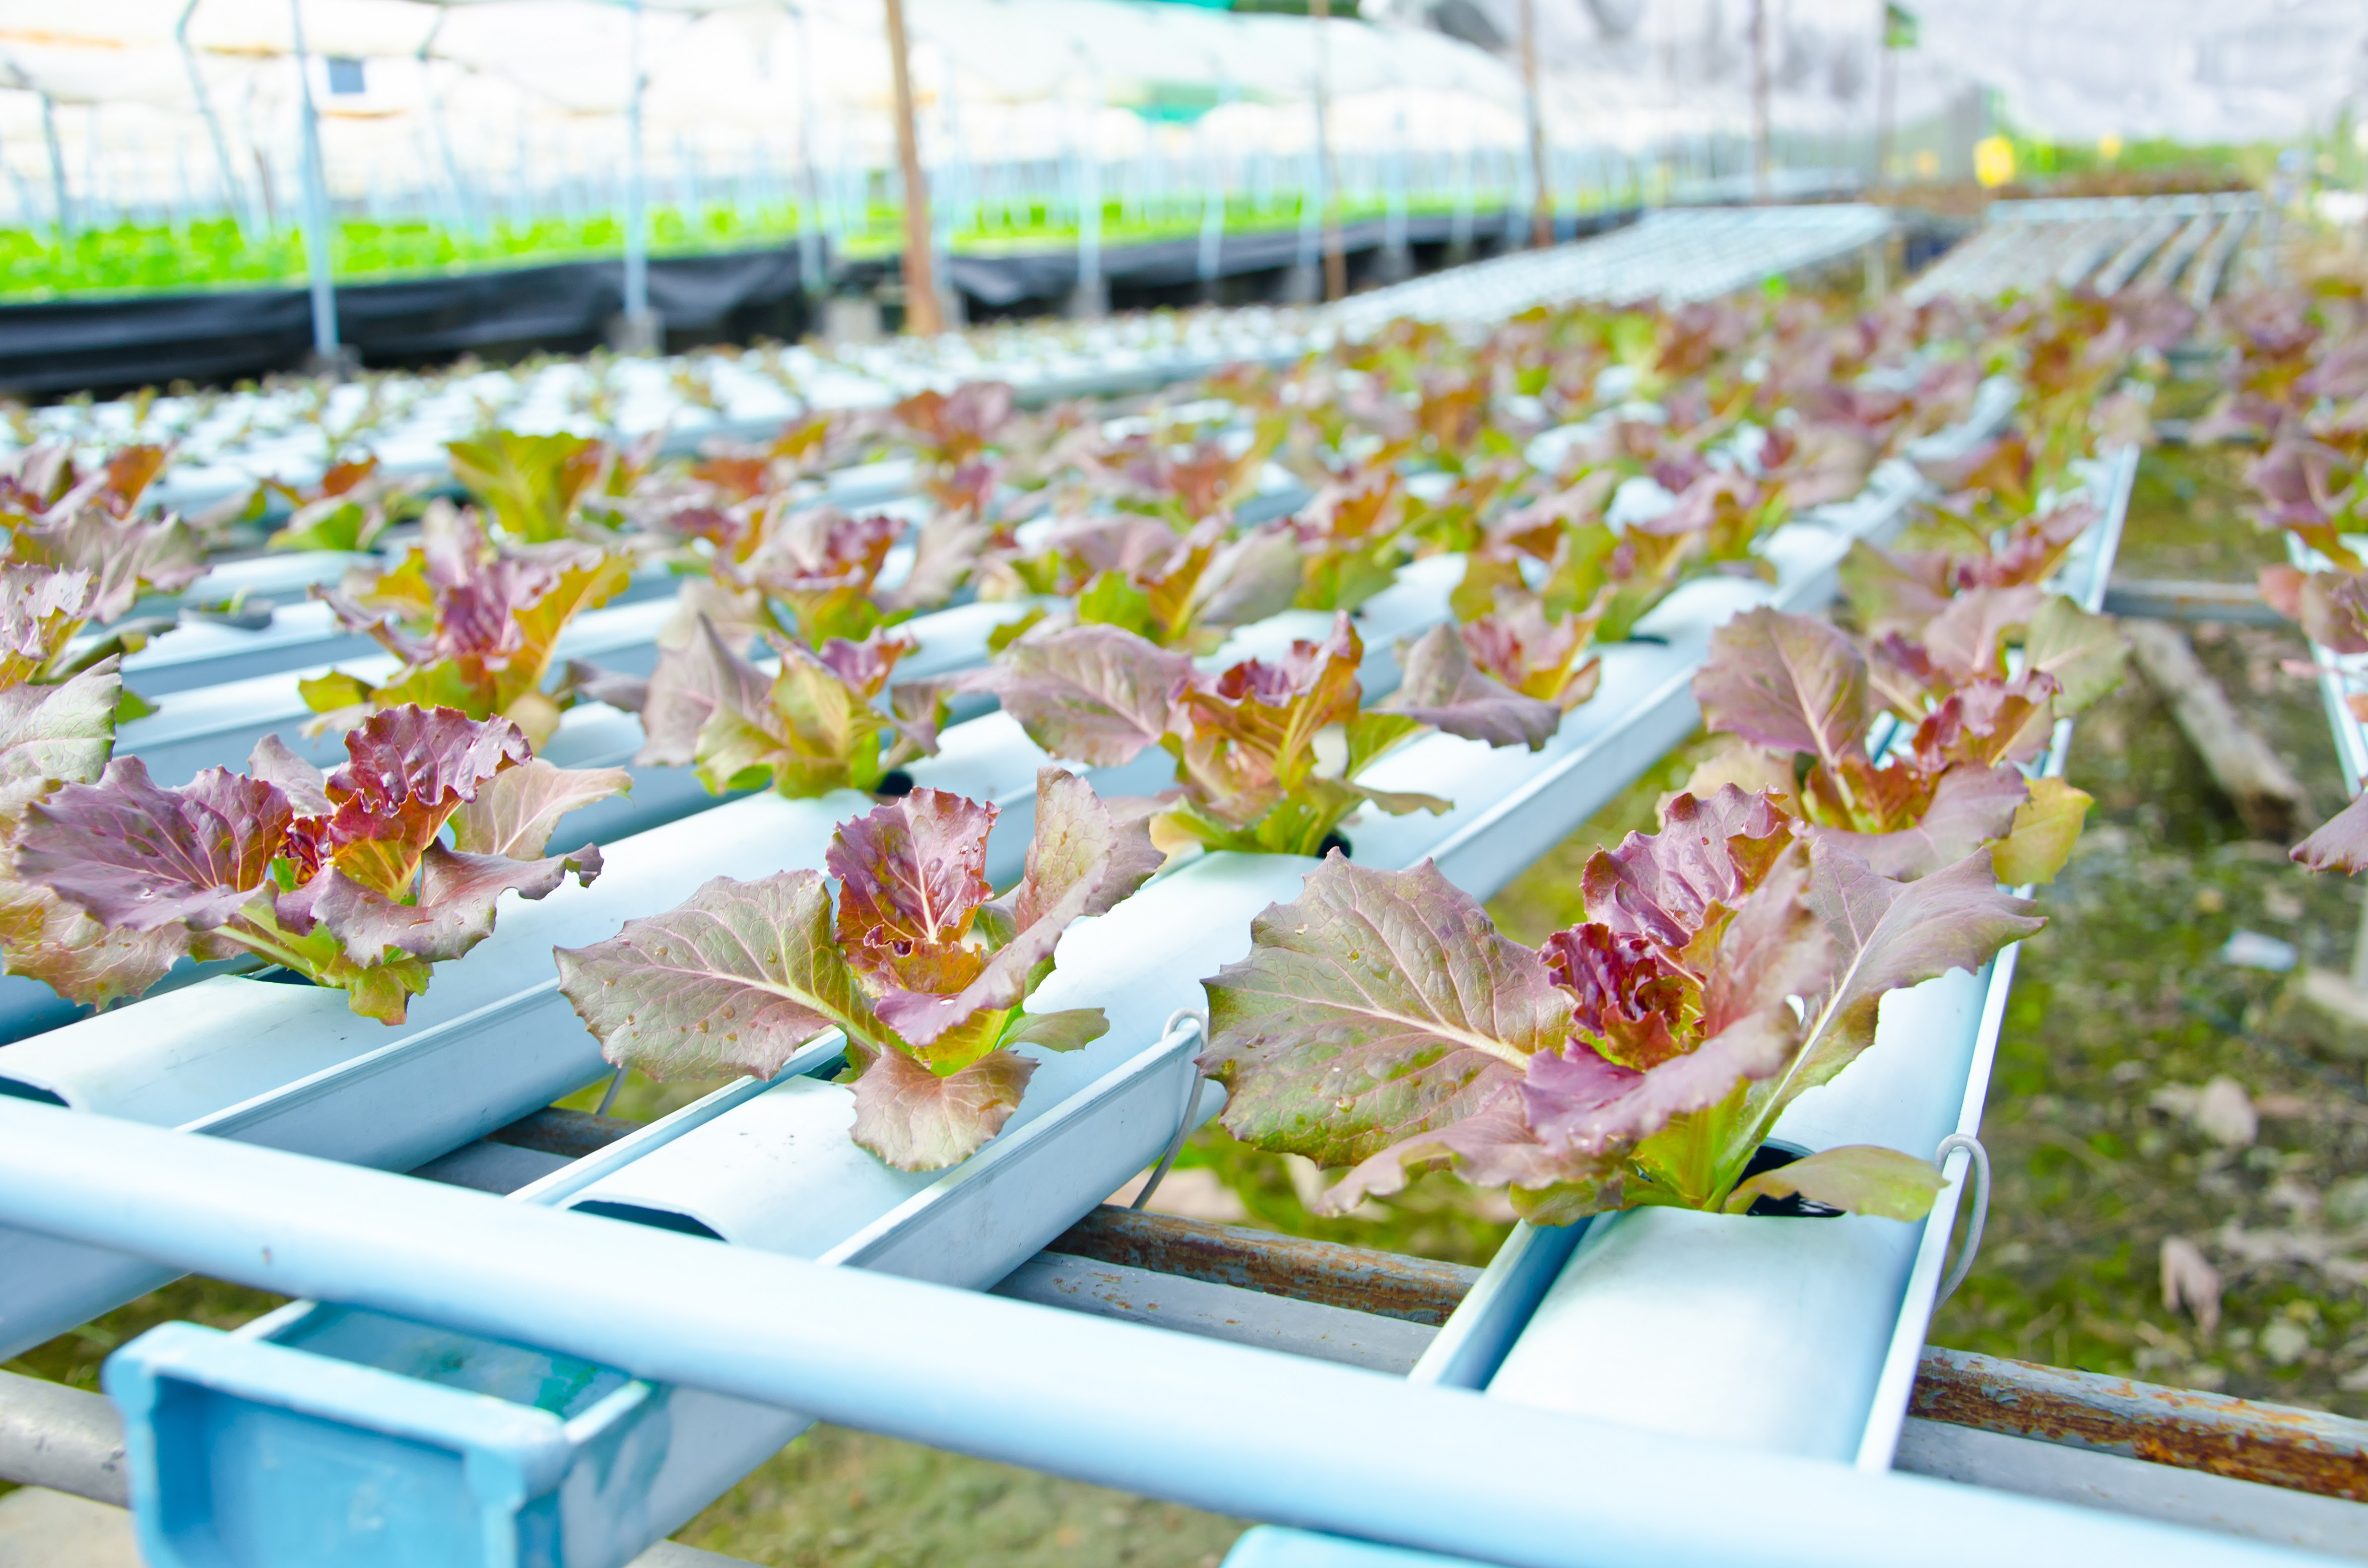 Food Industry Encouraged to Innovate with New Novel Food Regulation